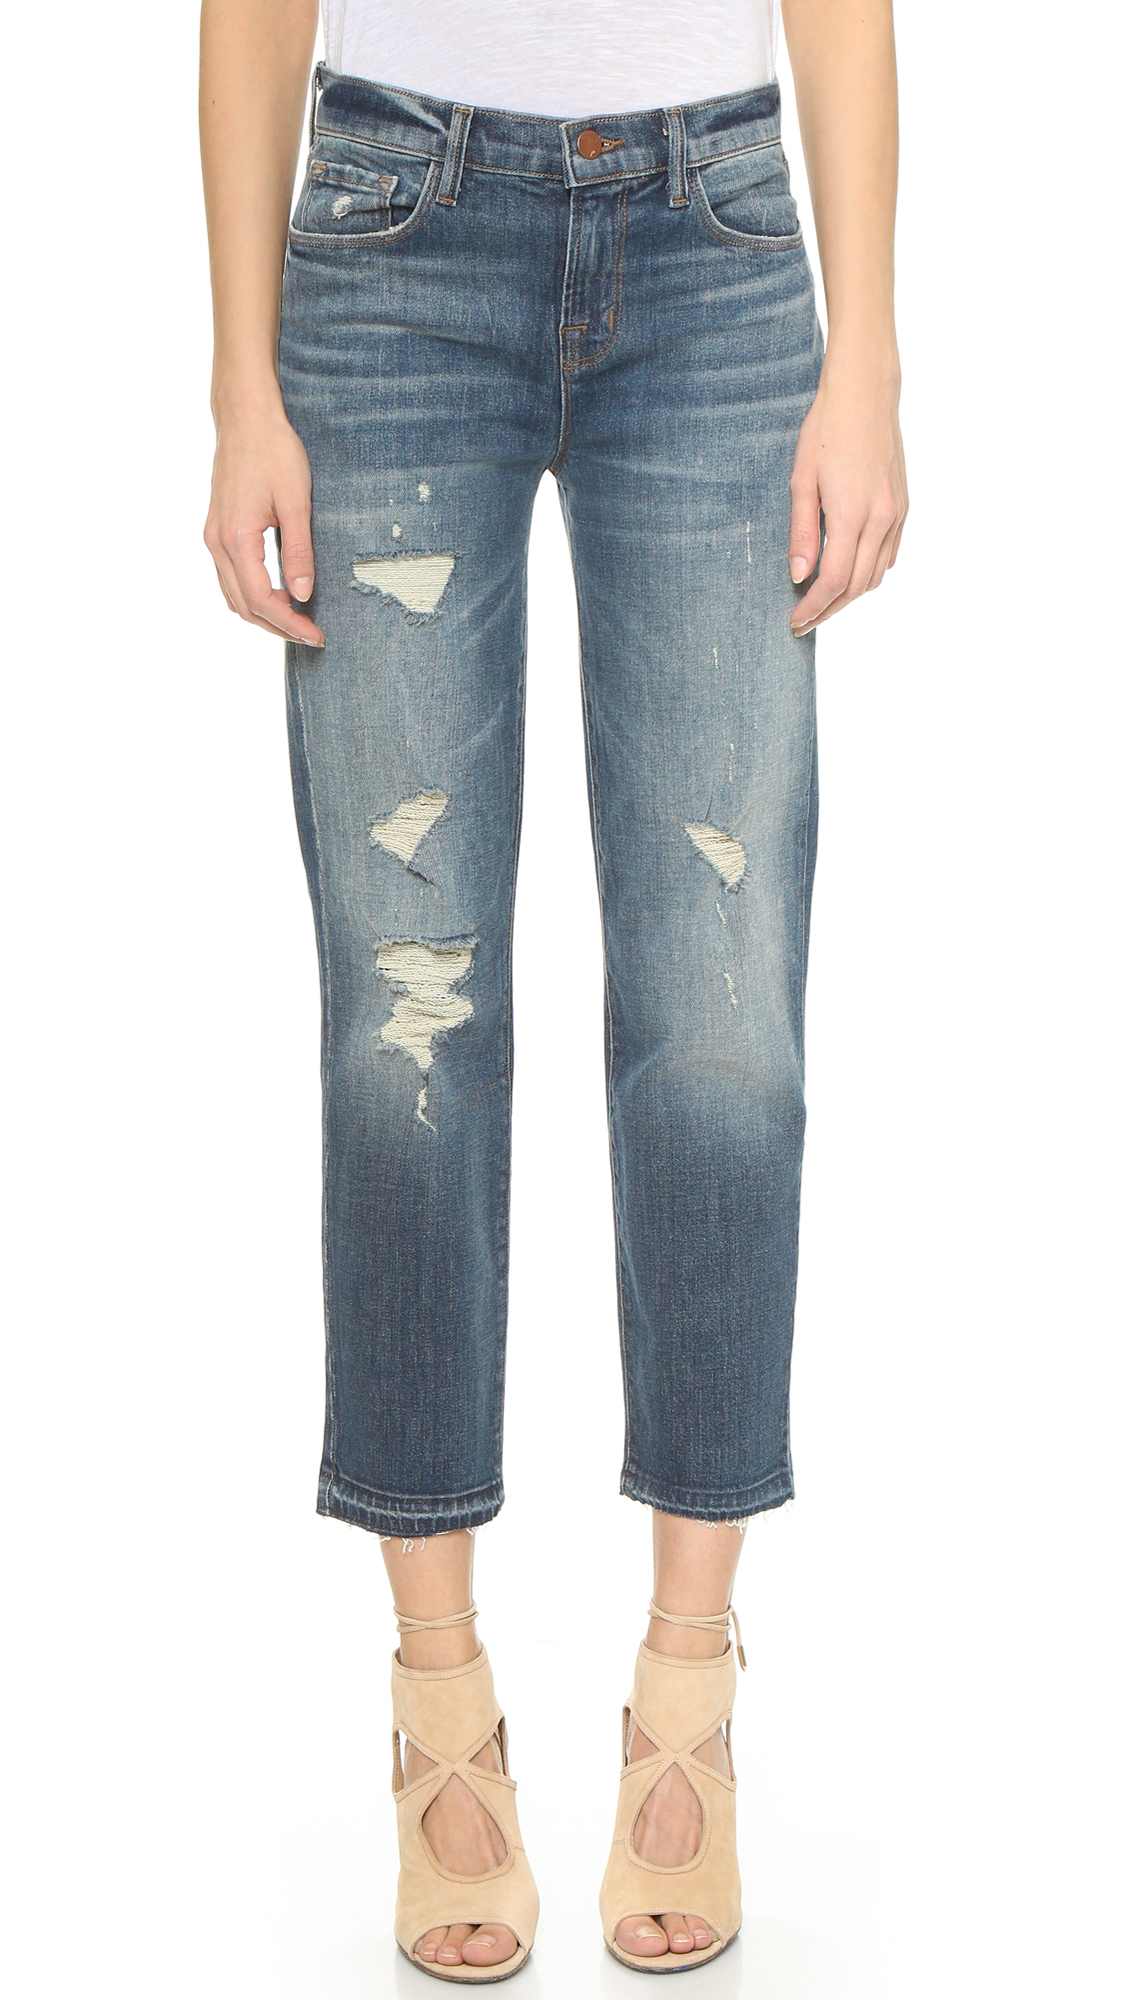 J Brand Maria Straight Leg Cropped Jeans - Blitz in Blue